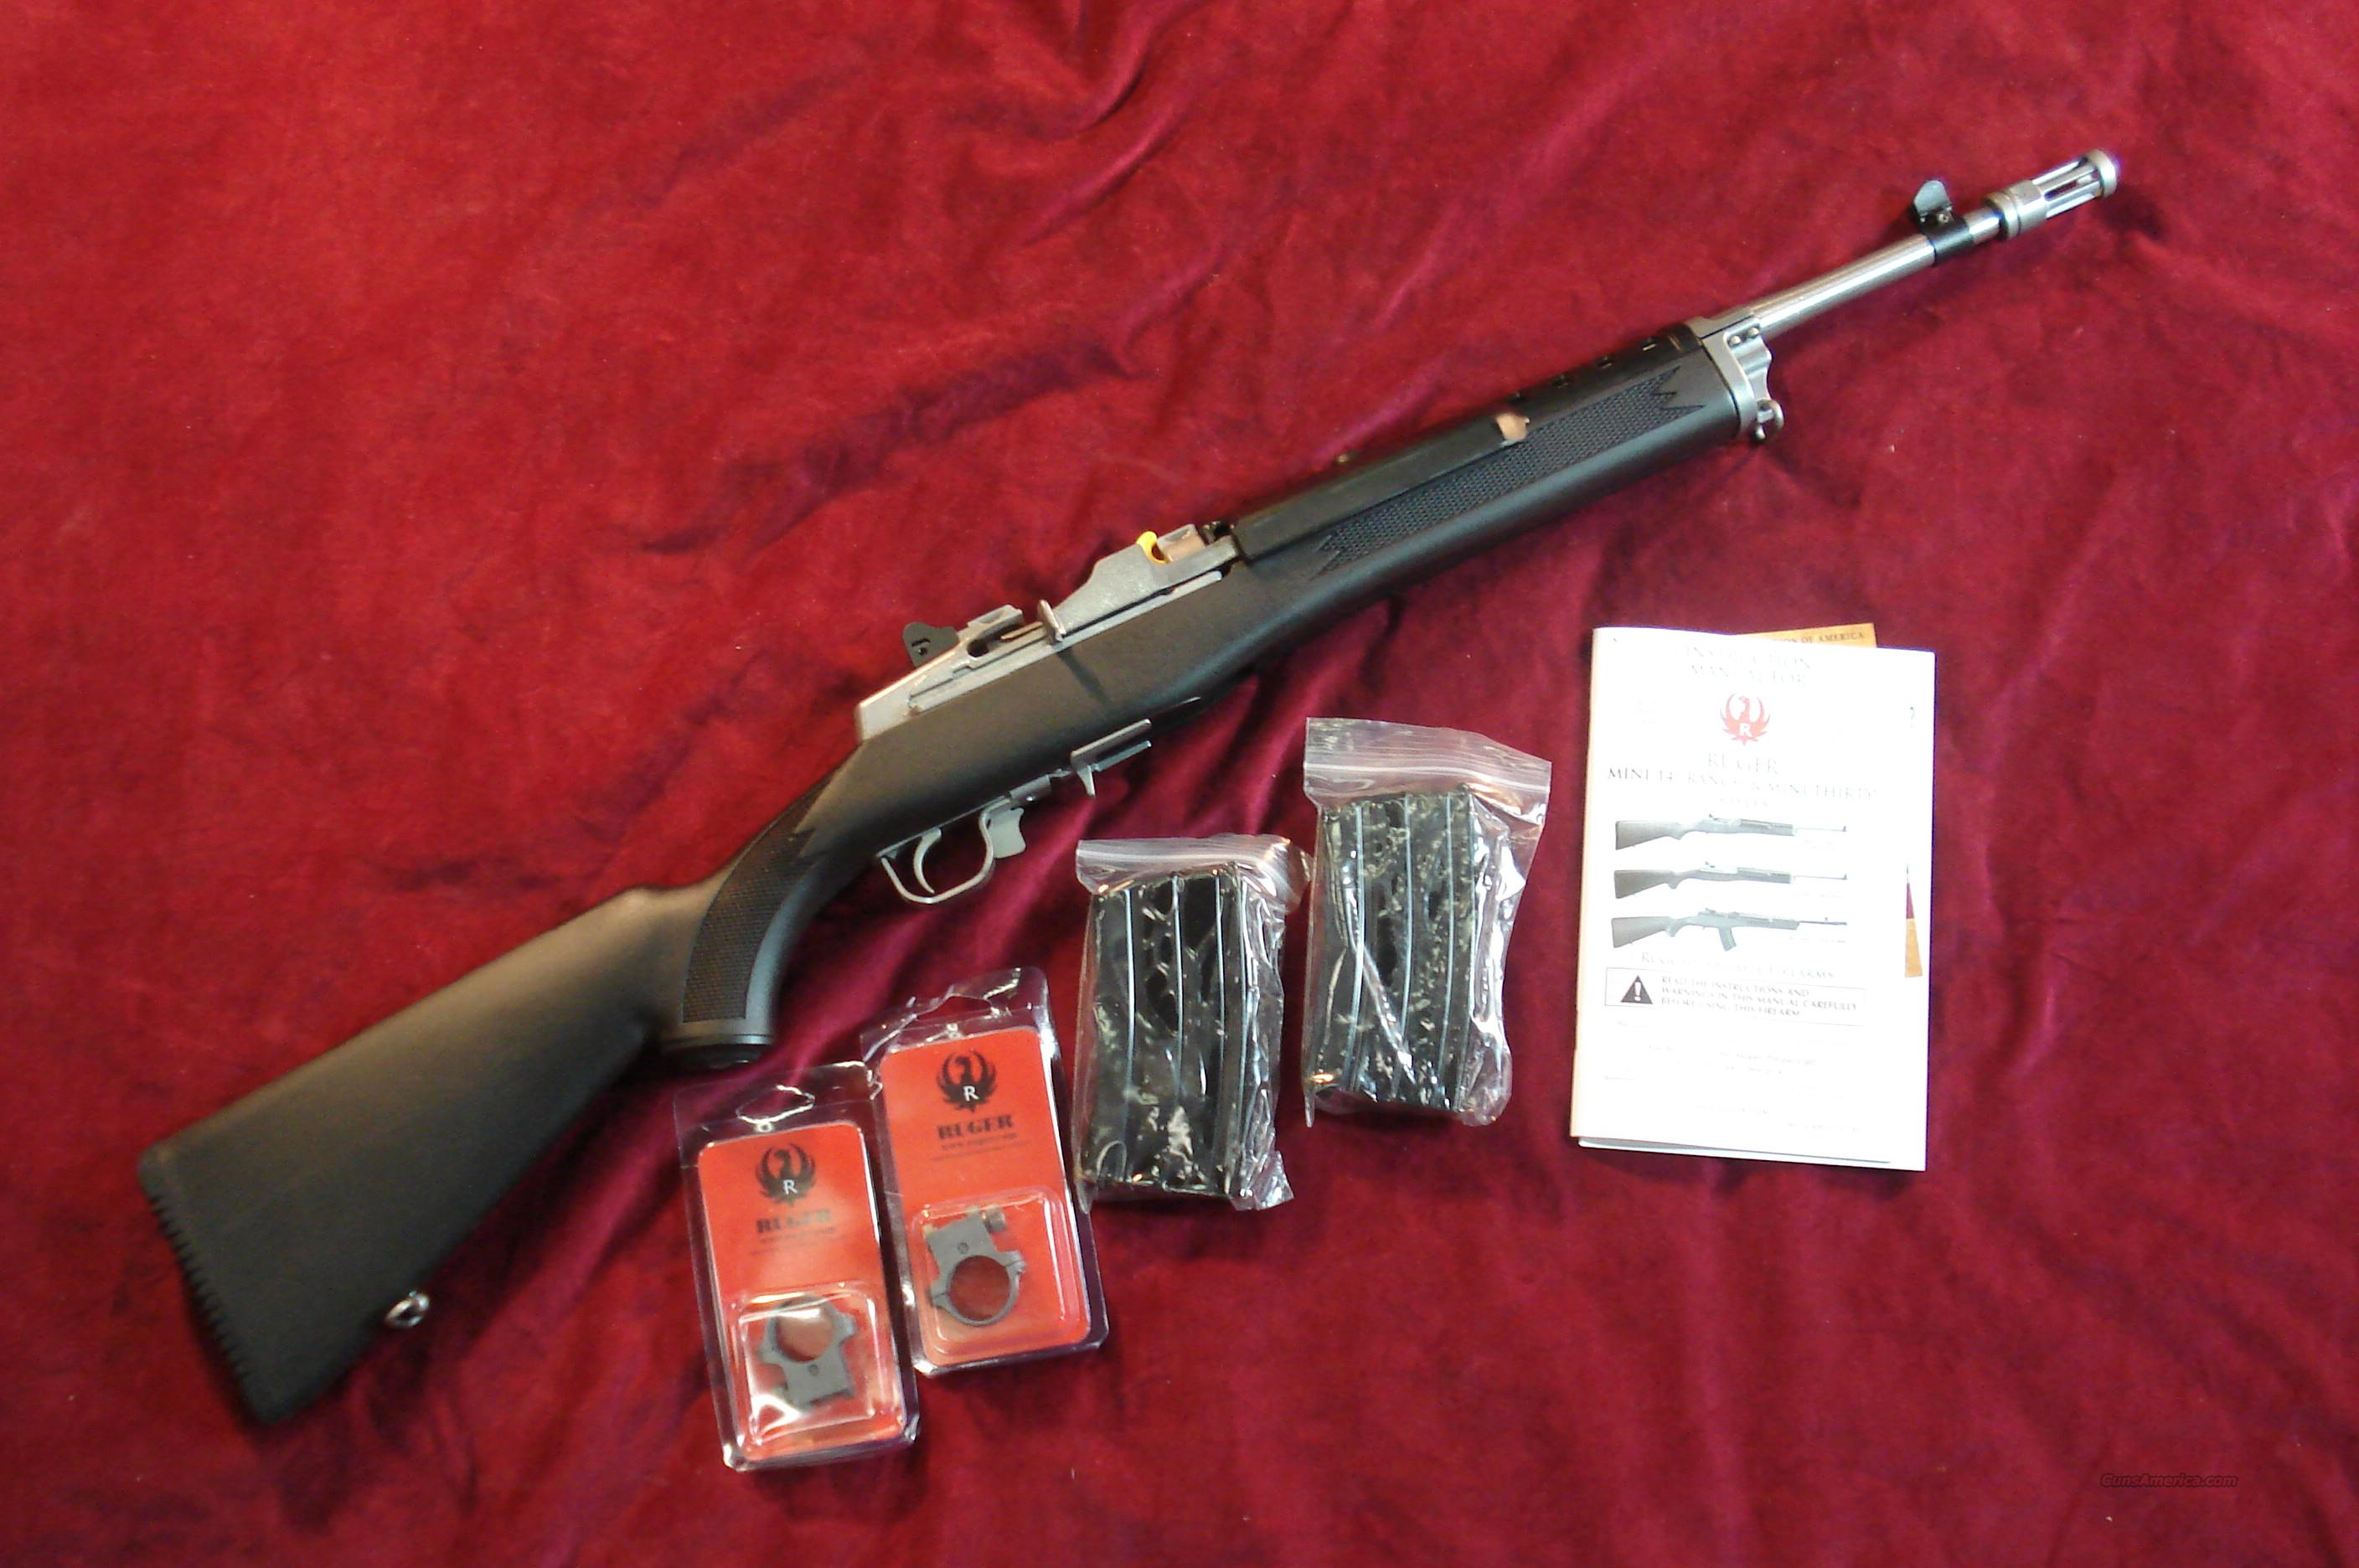 RUGER STAINLESS MINI 14 TACTICAL RIFLE 223 CAL. NEW (M-14/20GBCP)  Guns > Rifles > Ruger Rifles > Mini-14 Type